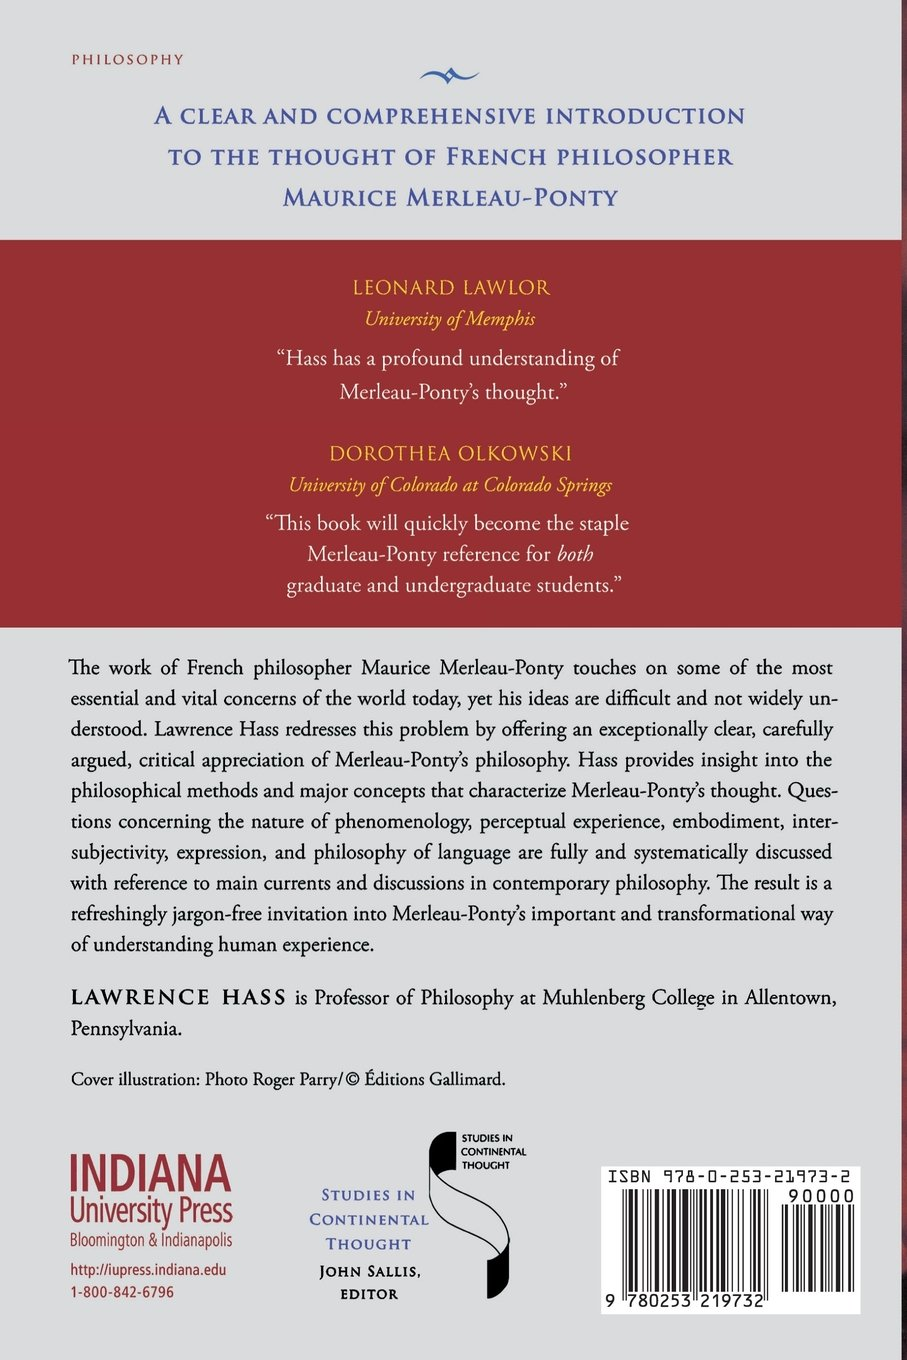 Merleau-Ponty's Philosophy (Studies in Continental Thought): Lawrence Hass:  9780253219732: Amazon.com: Books